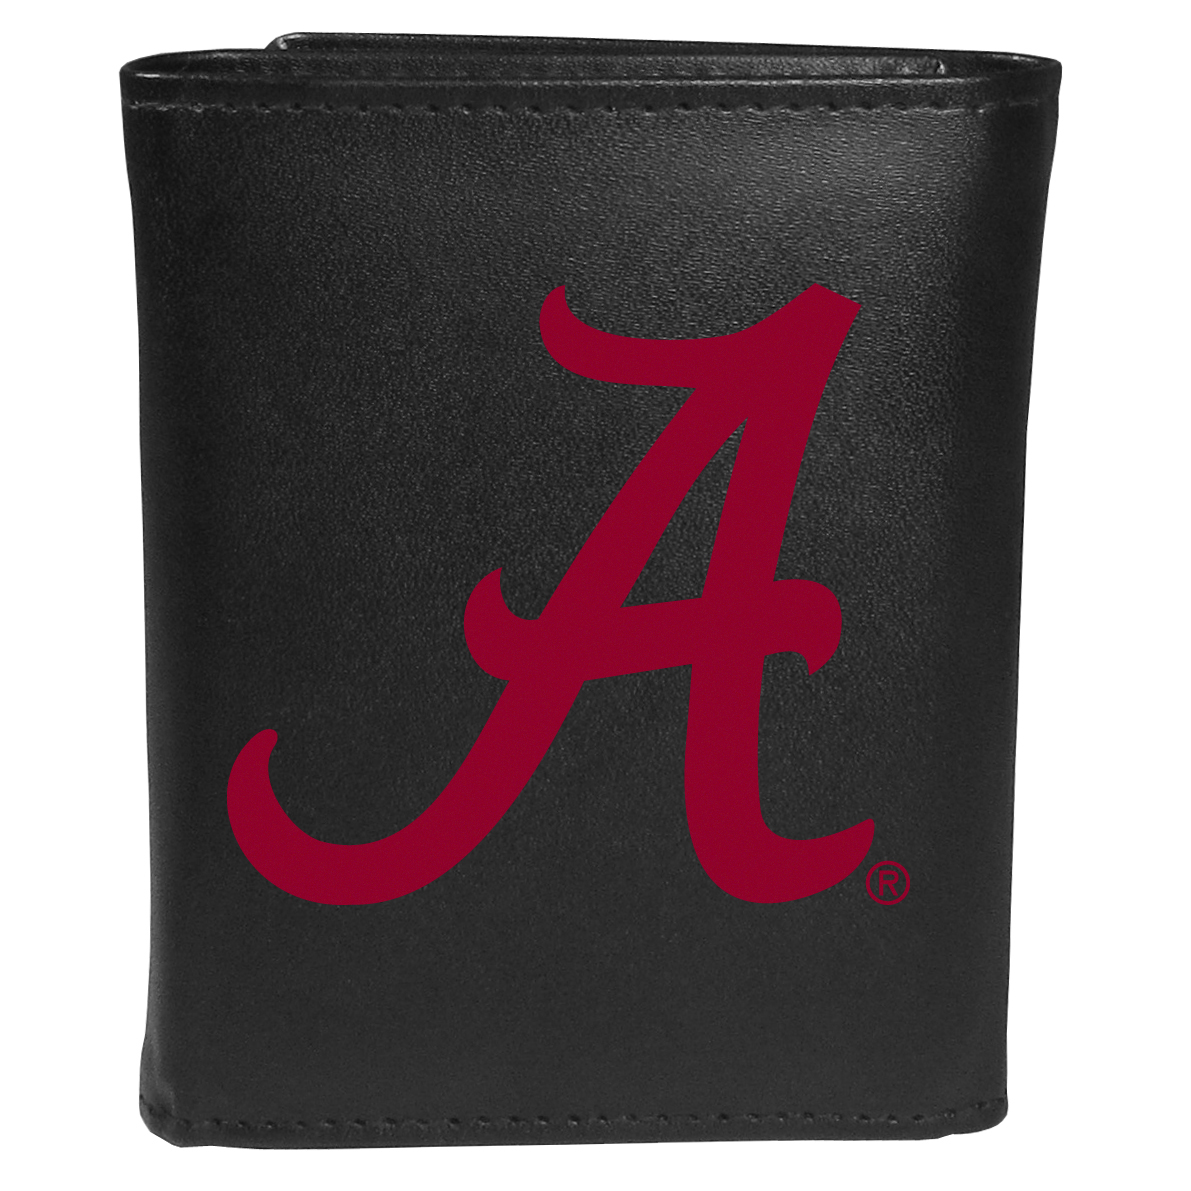 Alabama Crimson Tide Tri-fold Wallet Large Logo - Sports fans do not have to sacrifice style with this classic tri-fold wallet that sports theAlabama Crimson Tide?extra large logo. This men's fashion accessory has a leather grain look and expert craftmanship for a quality wallet at a great price. The wallet features inner credit card slots, windowed ID slot and a large billfold pocket. The front of the wallet features an extra large printed team logo.